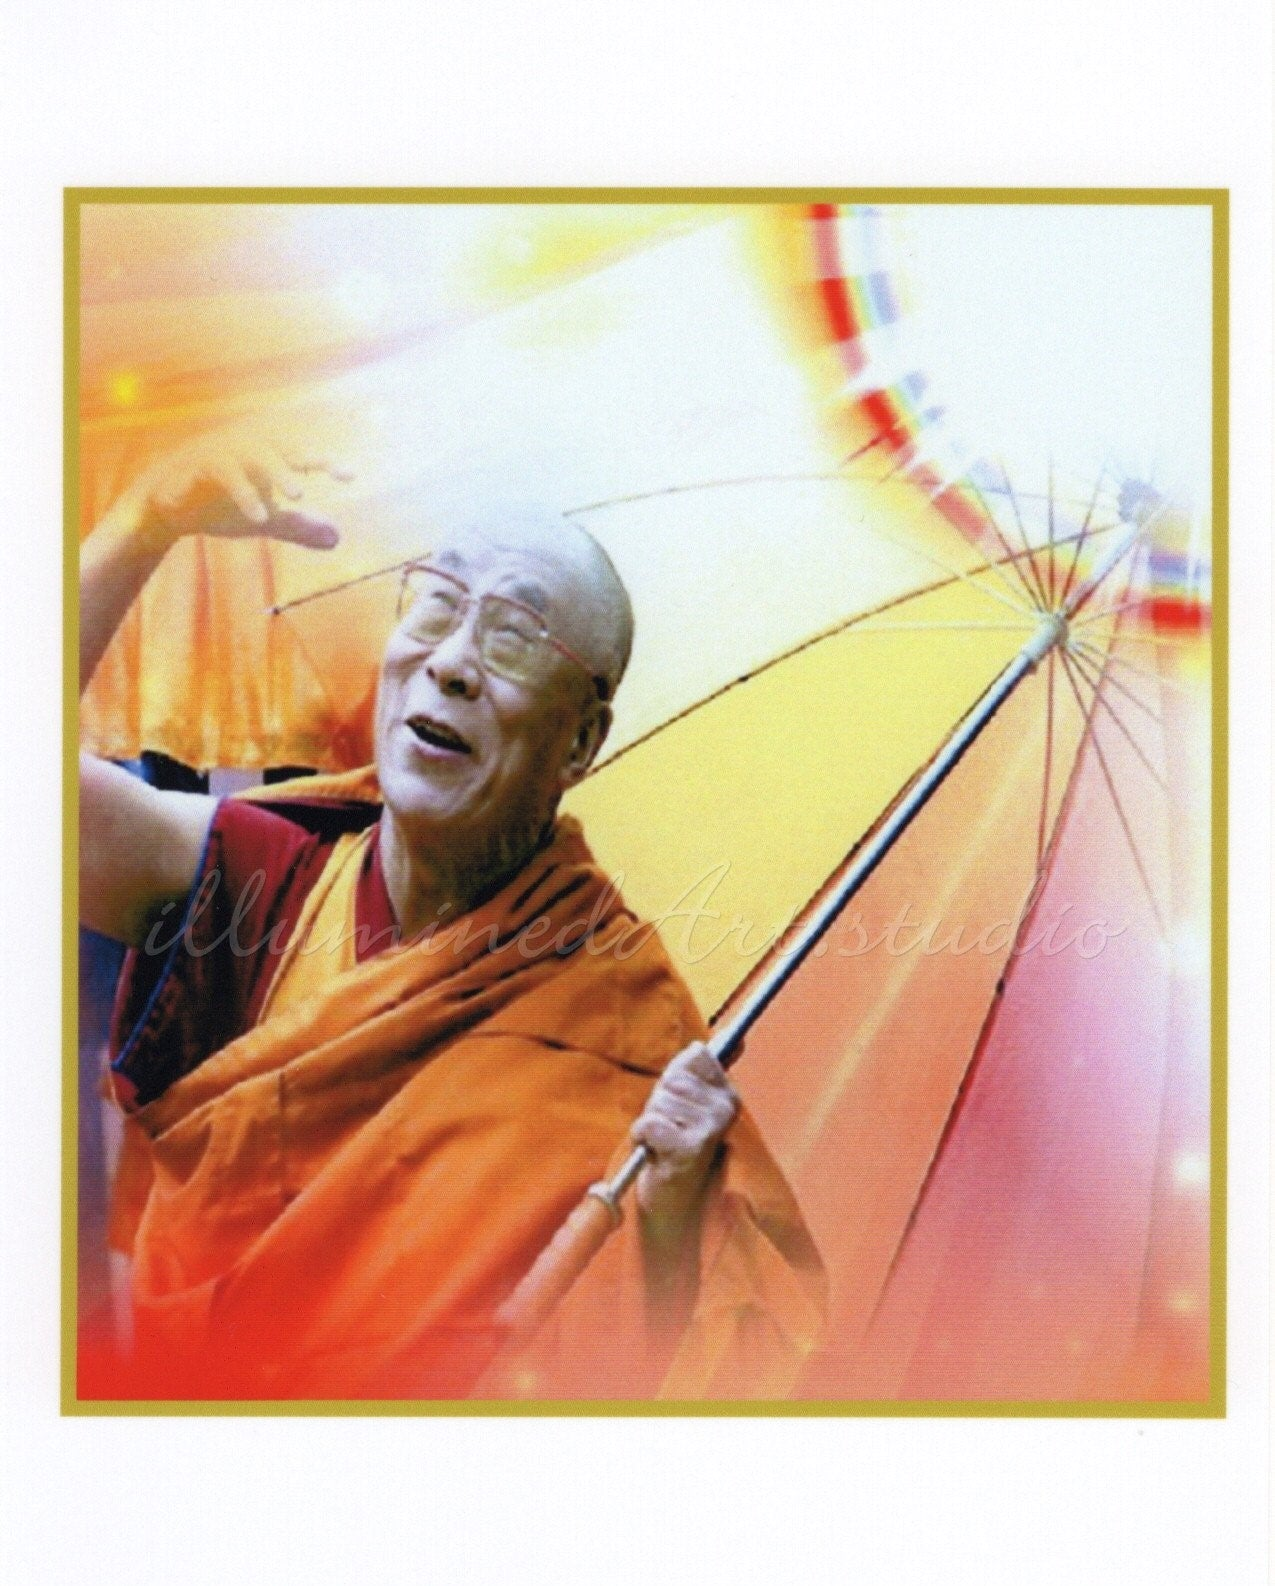 Illumination of The Dalai Lama